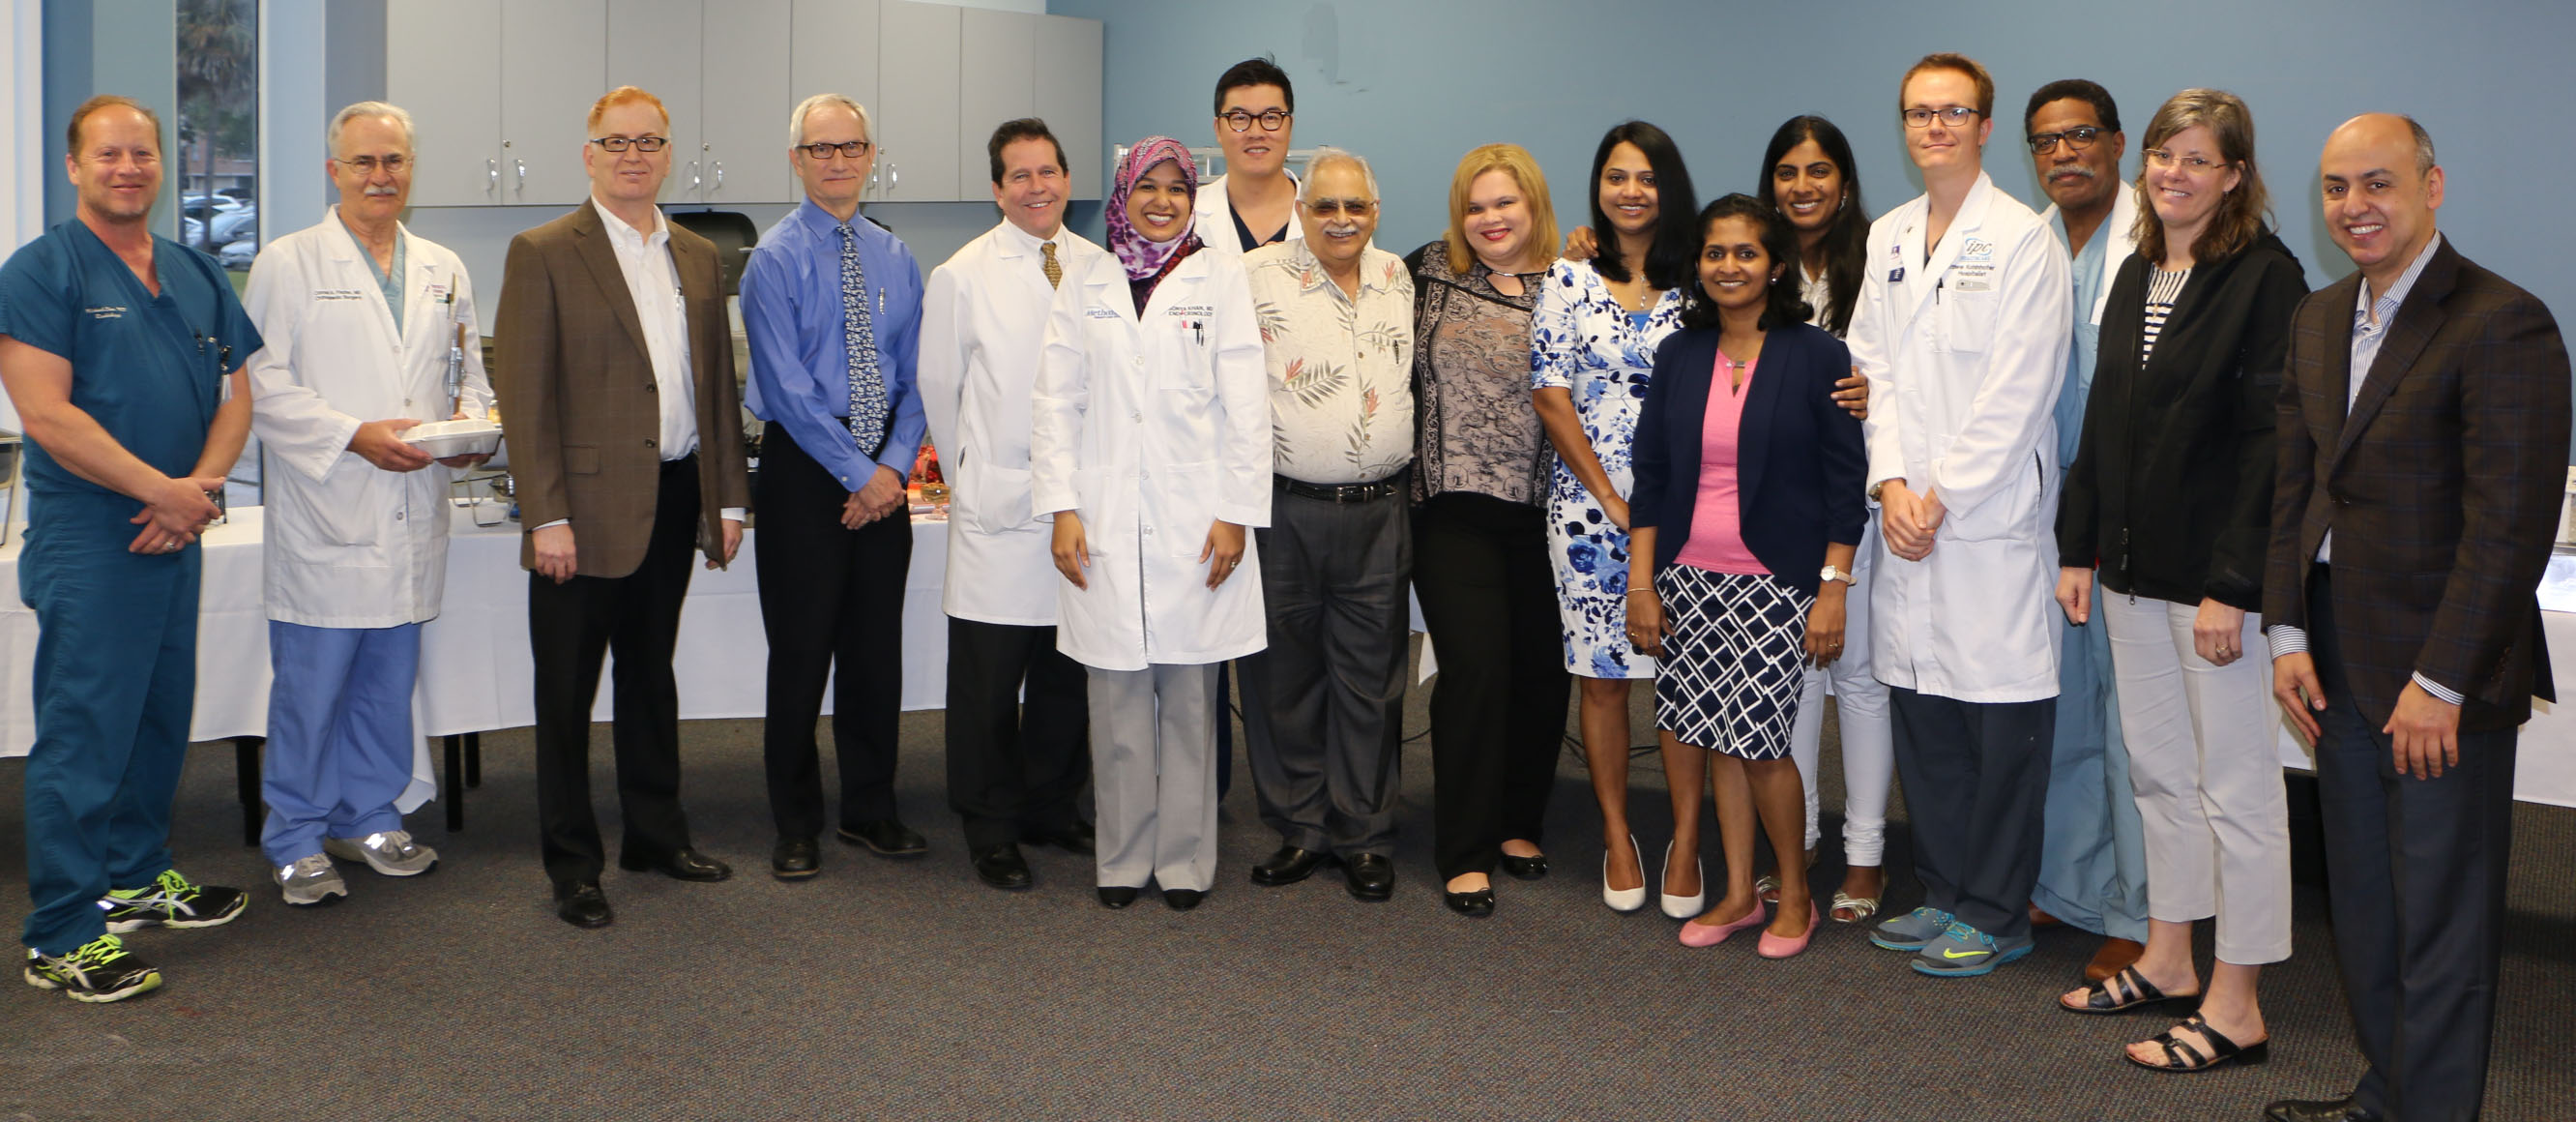 Staff physicians at Houston Methodist St. John Hospital were treated to special breakfast and lunch buffets, prepared in their honor to celebrate National Doctors' Day.